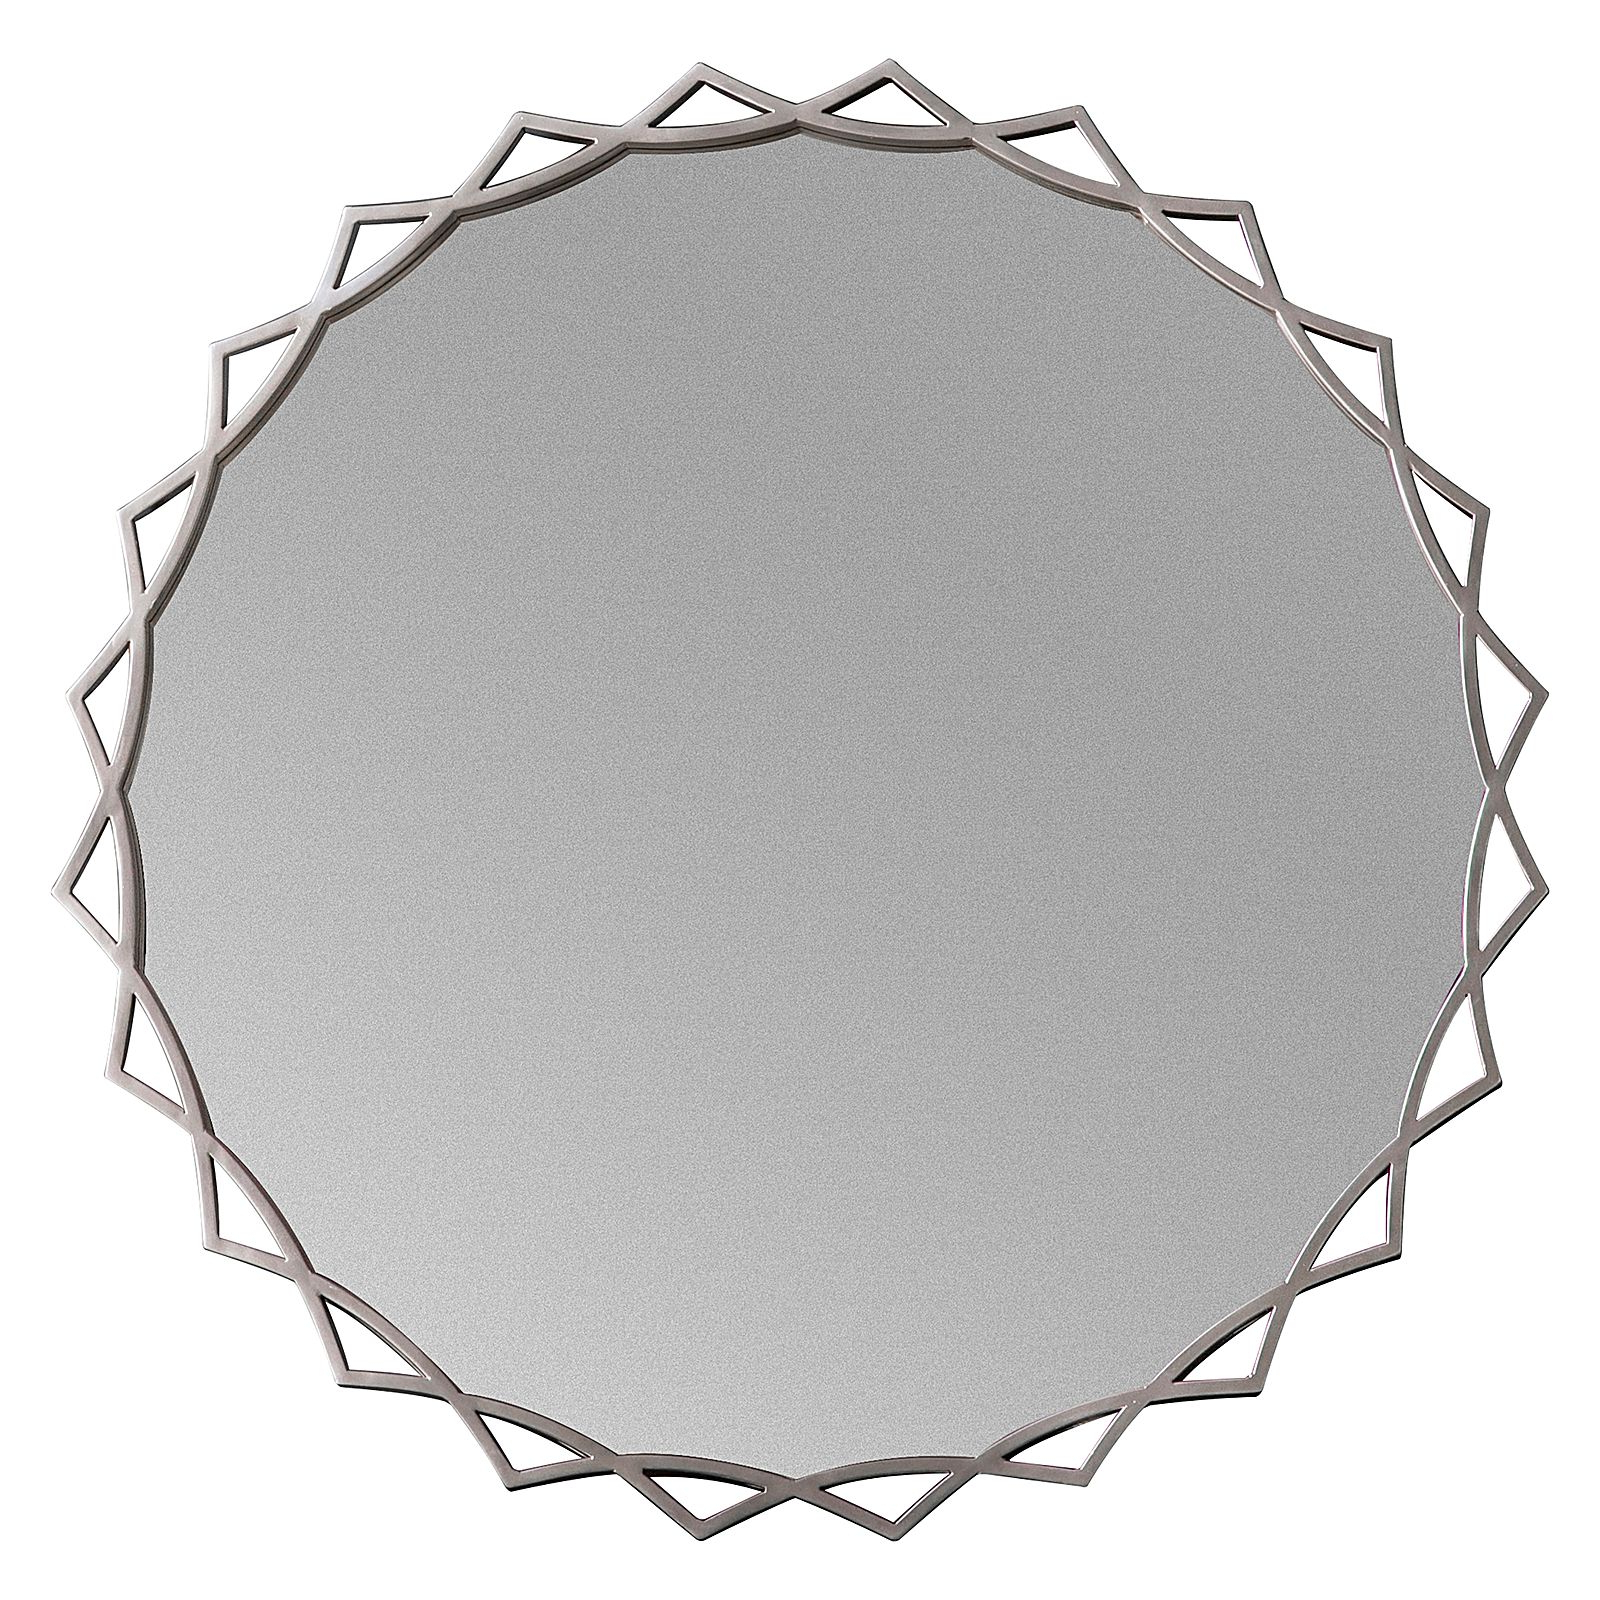 Soleil Round Wall Mirror Regarding Preferred Soleil Wall Mirrors (View 18 of 20)